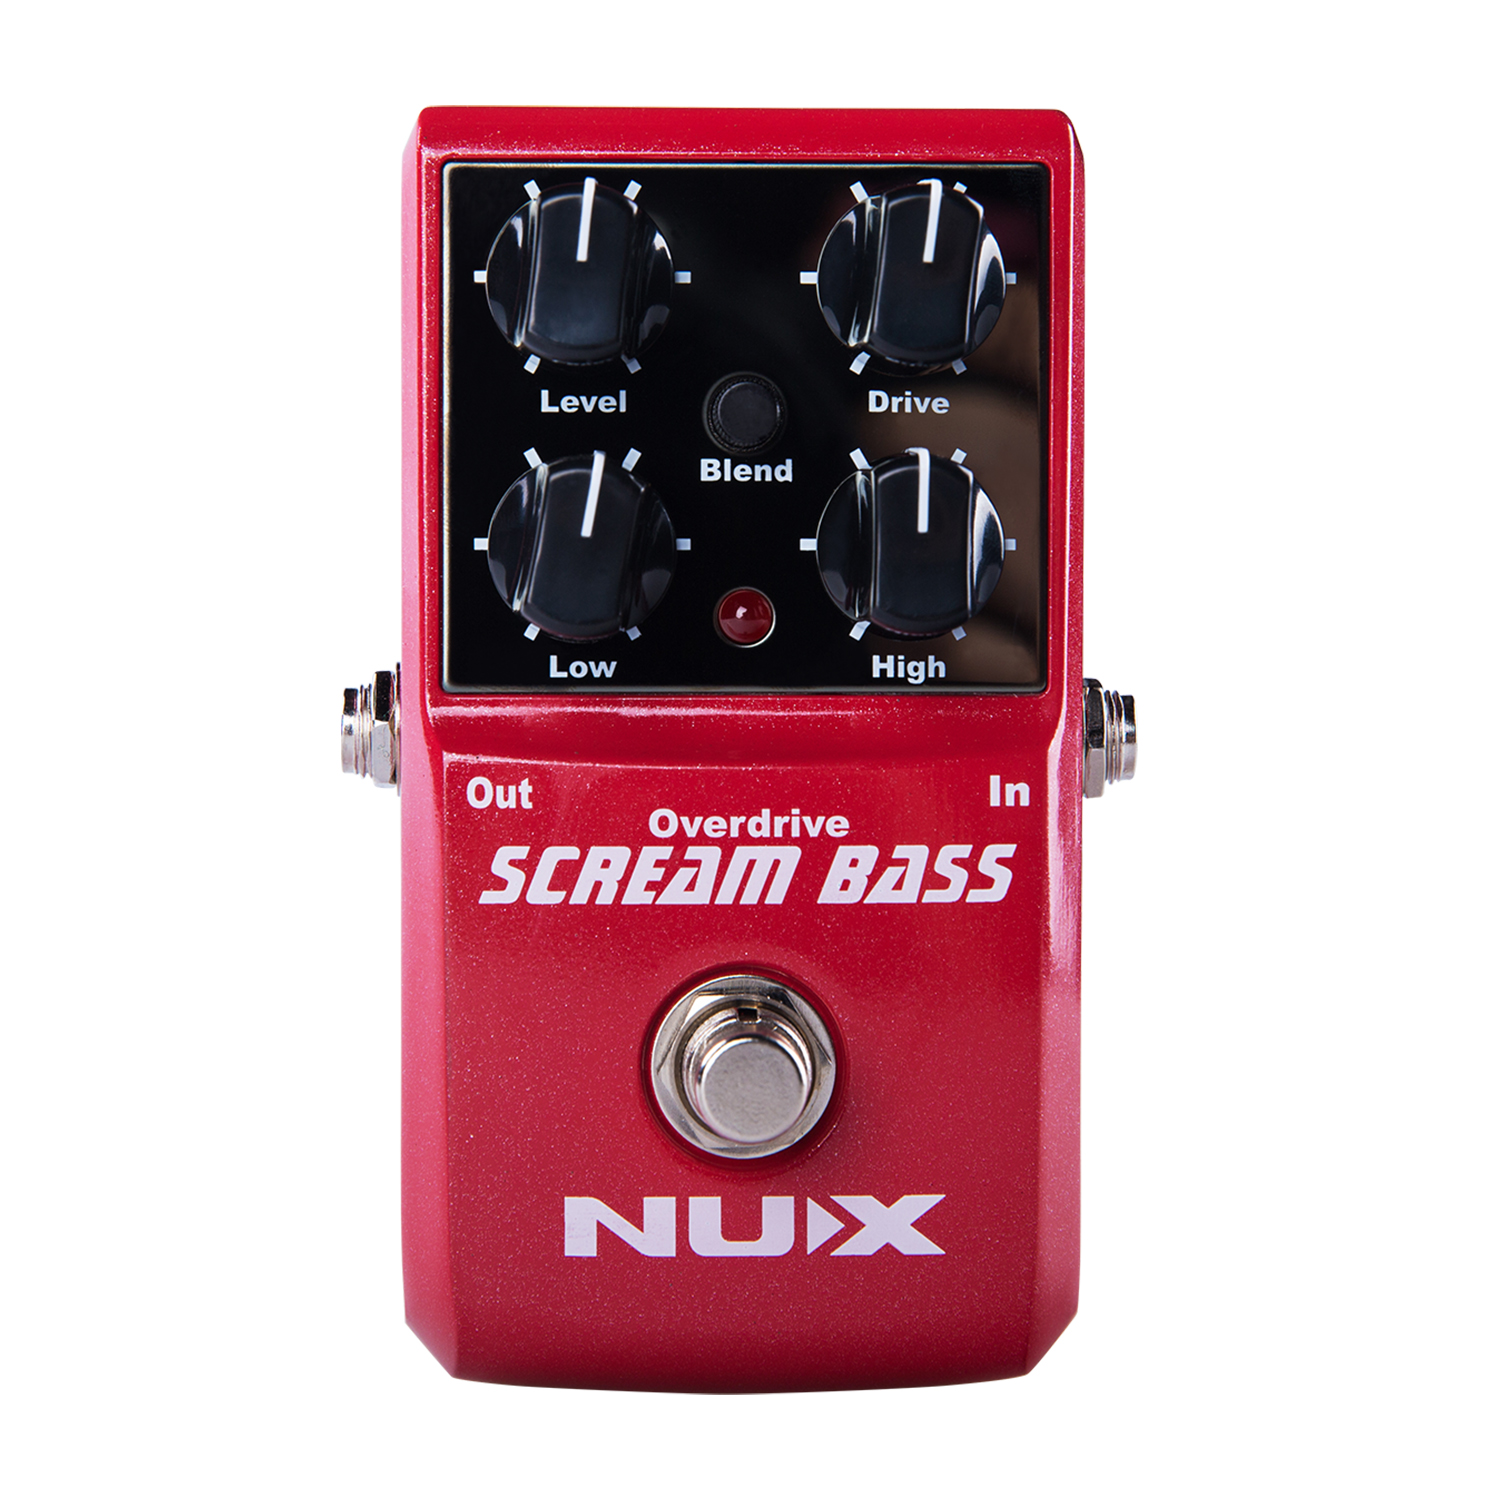 NUX Scream Bass Overdrive Guitar Effect Pedal Mix True bypass Gain Level High Low Controls Analogue Circuit Gain electric guitar pedal bass true bypass effect white custom biyang controls level top treble guitarra pedales new